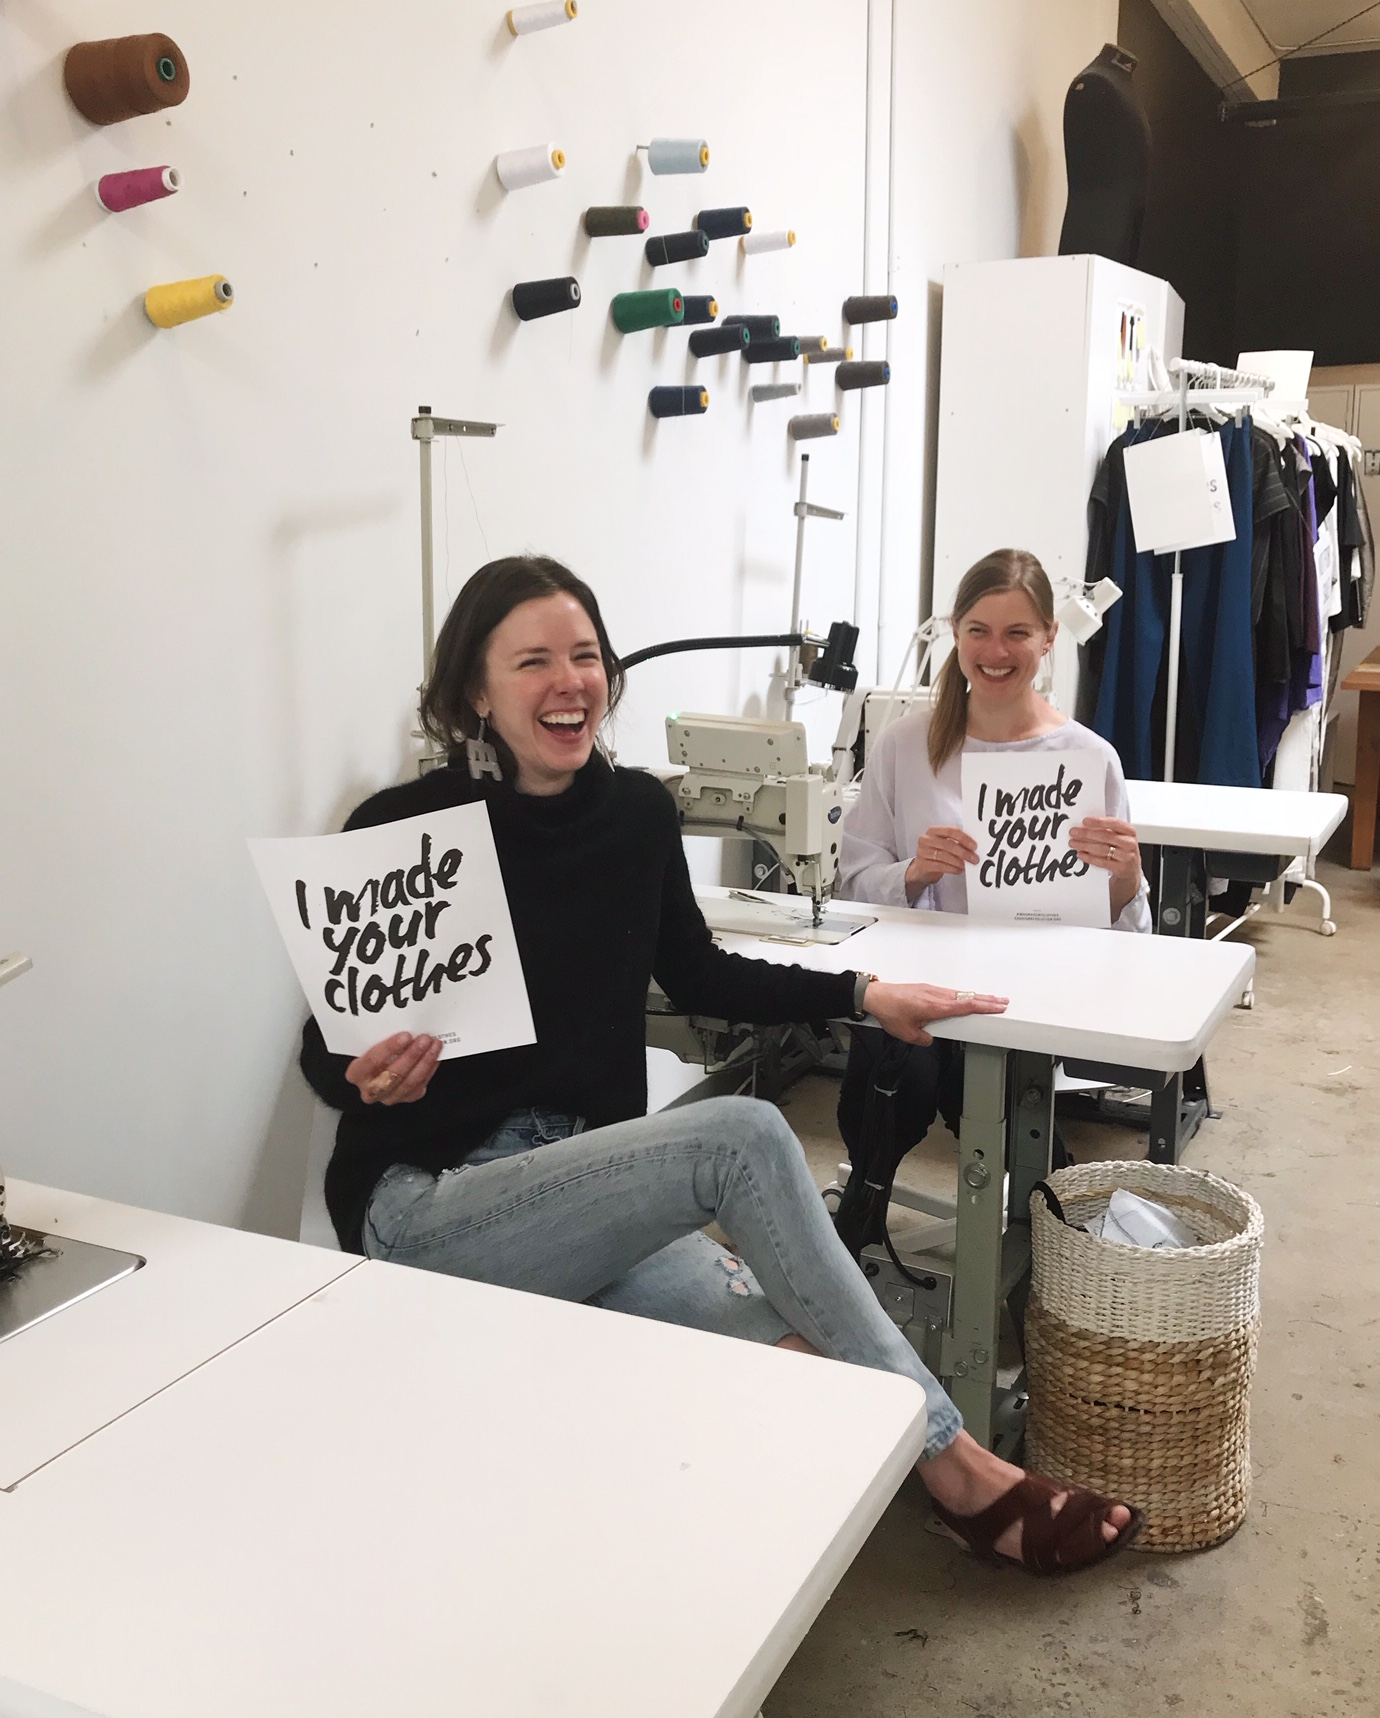 Kathryn (founder) and Marcia (production manager) of Winsome Goods